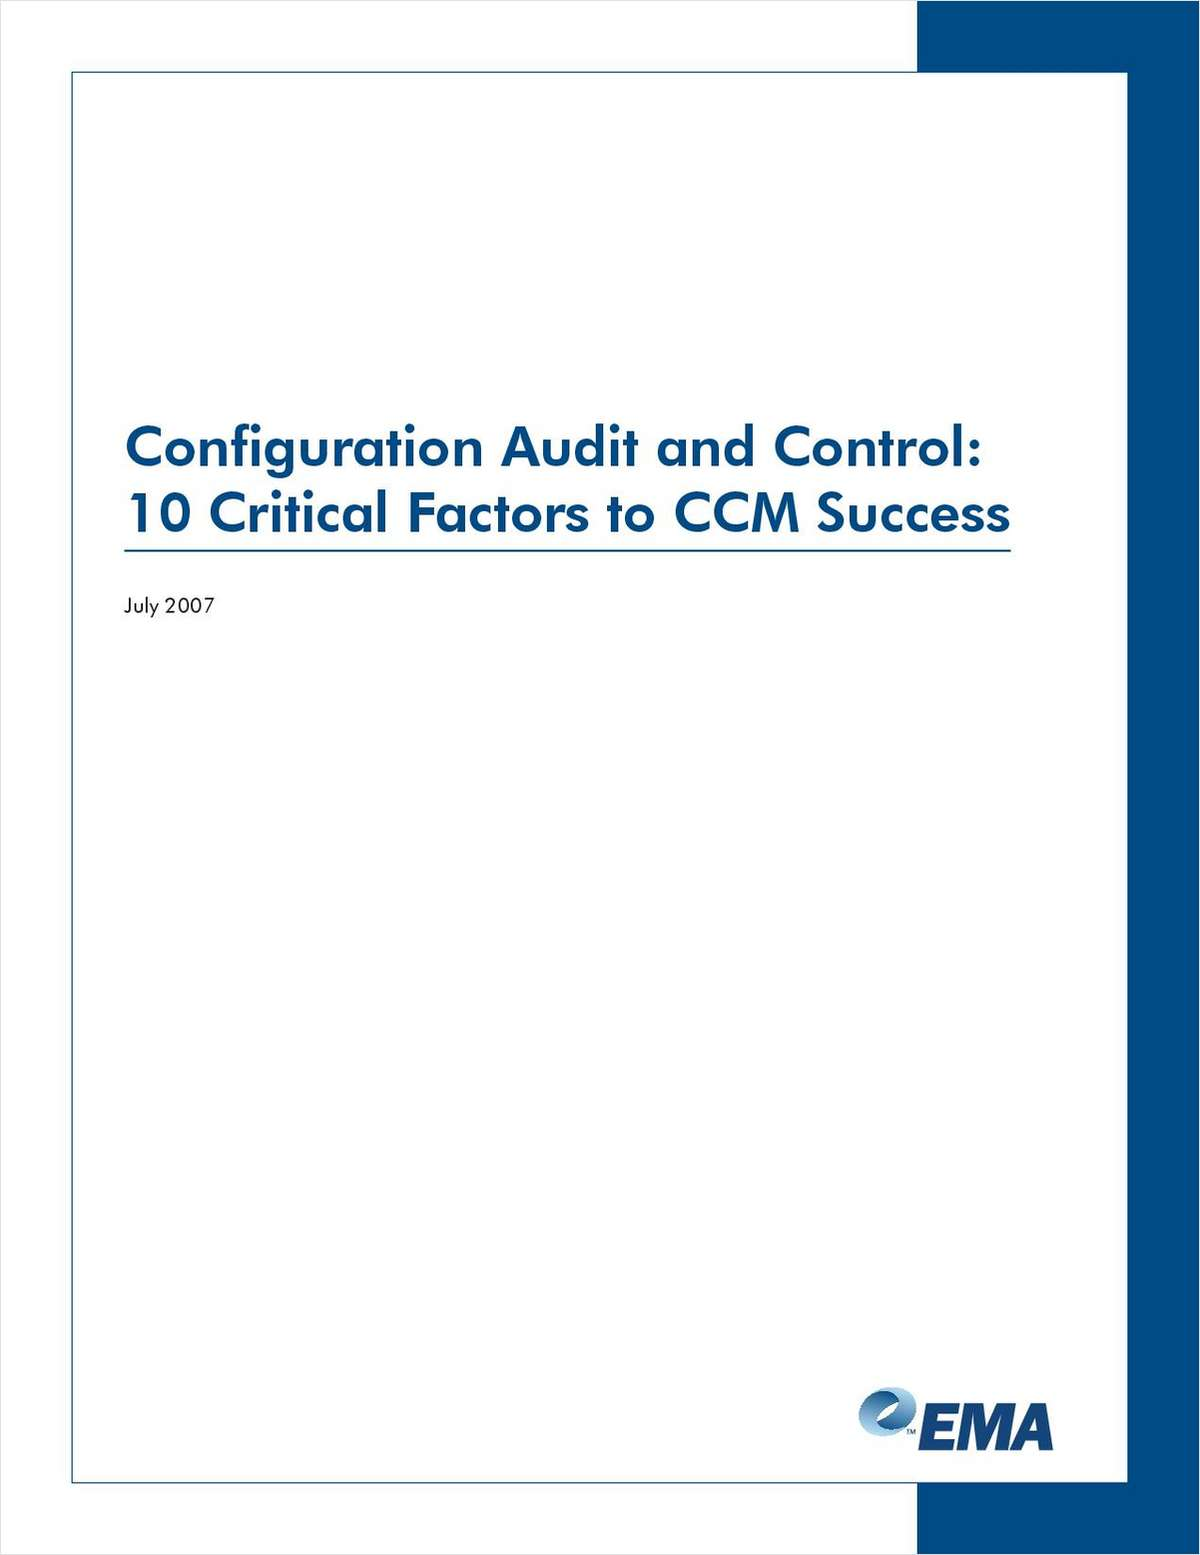 Configuration Audit and Control: 10 Critical Factors for CCM Success